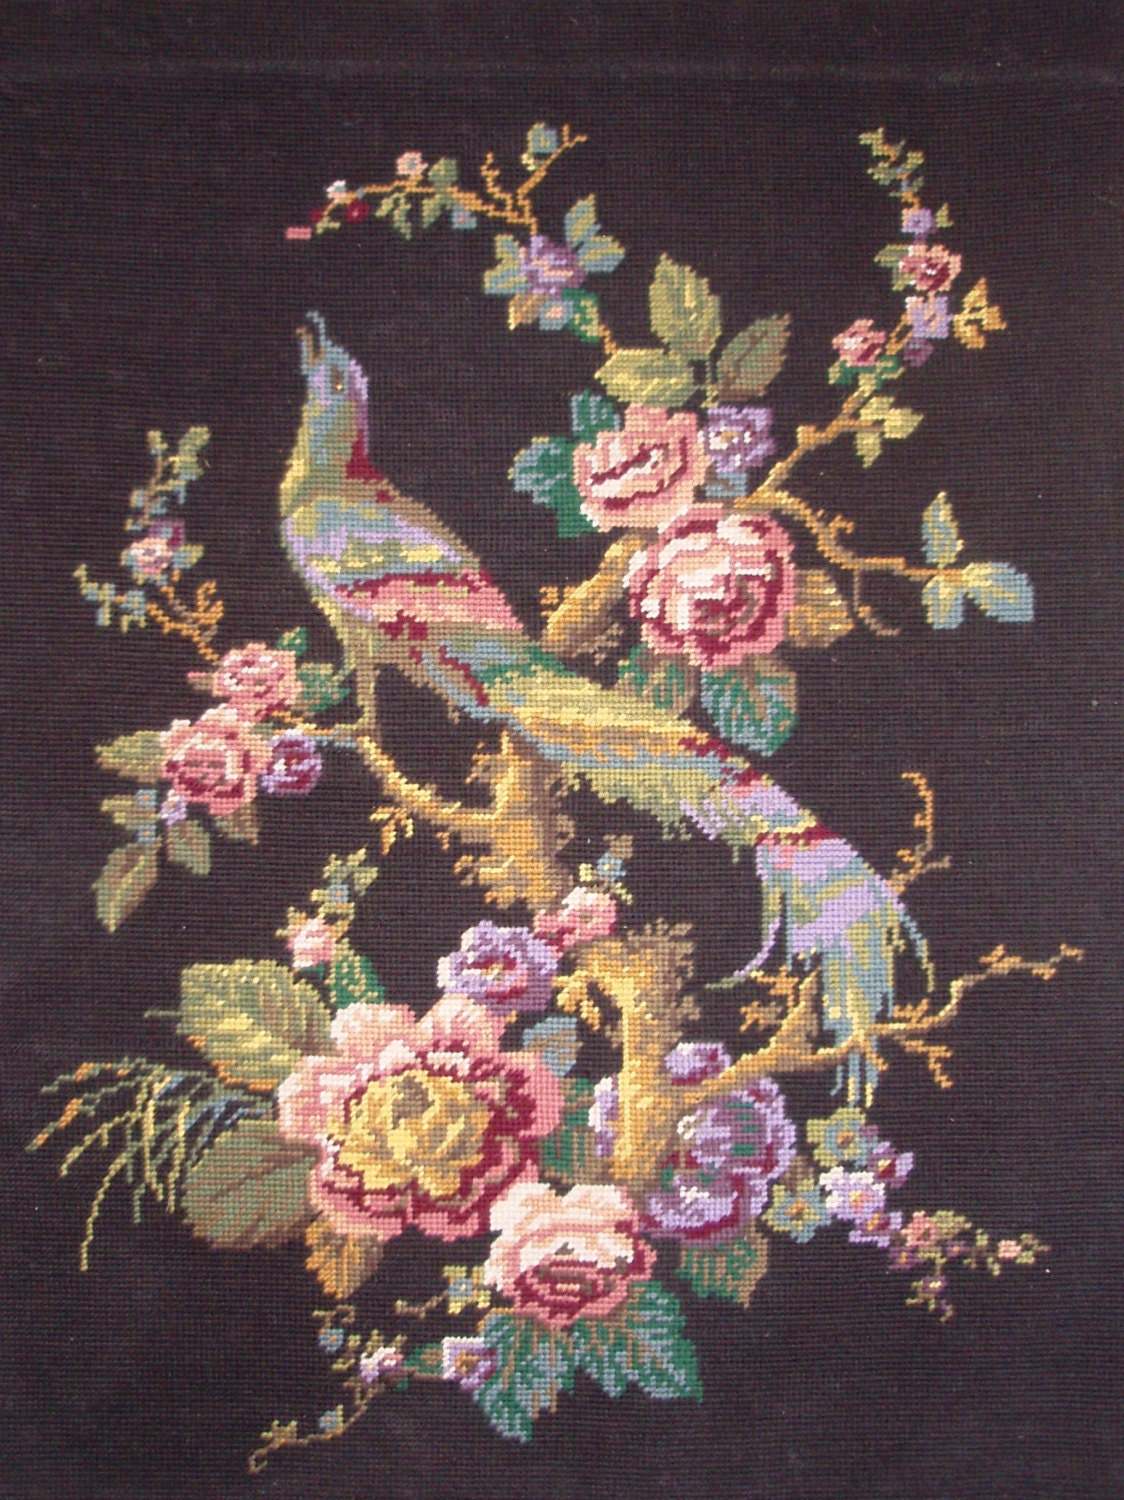 Vintage French Needlepoint Tapestry Canvas Embroidery Bird